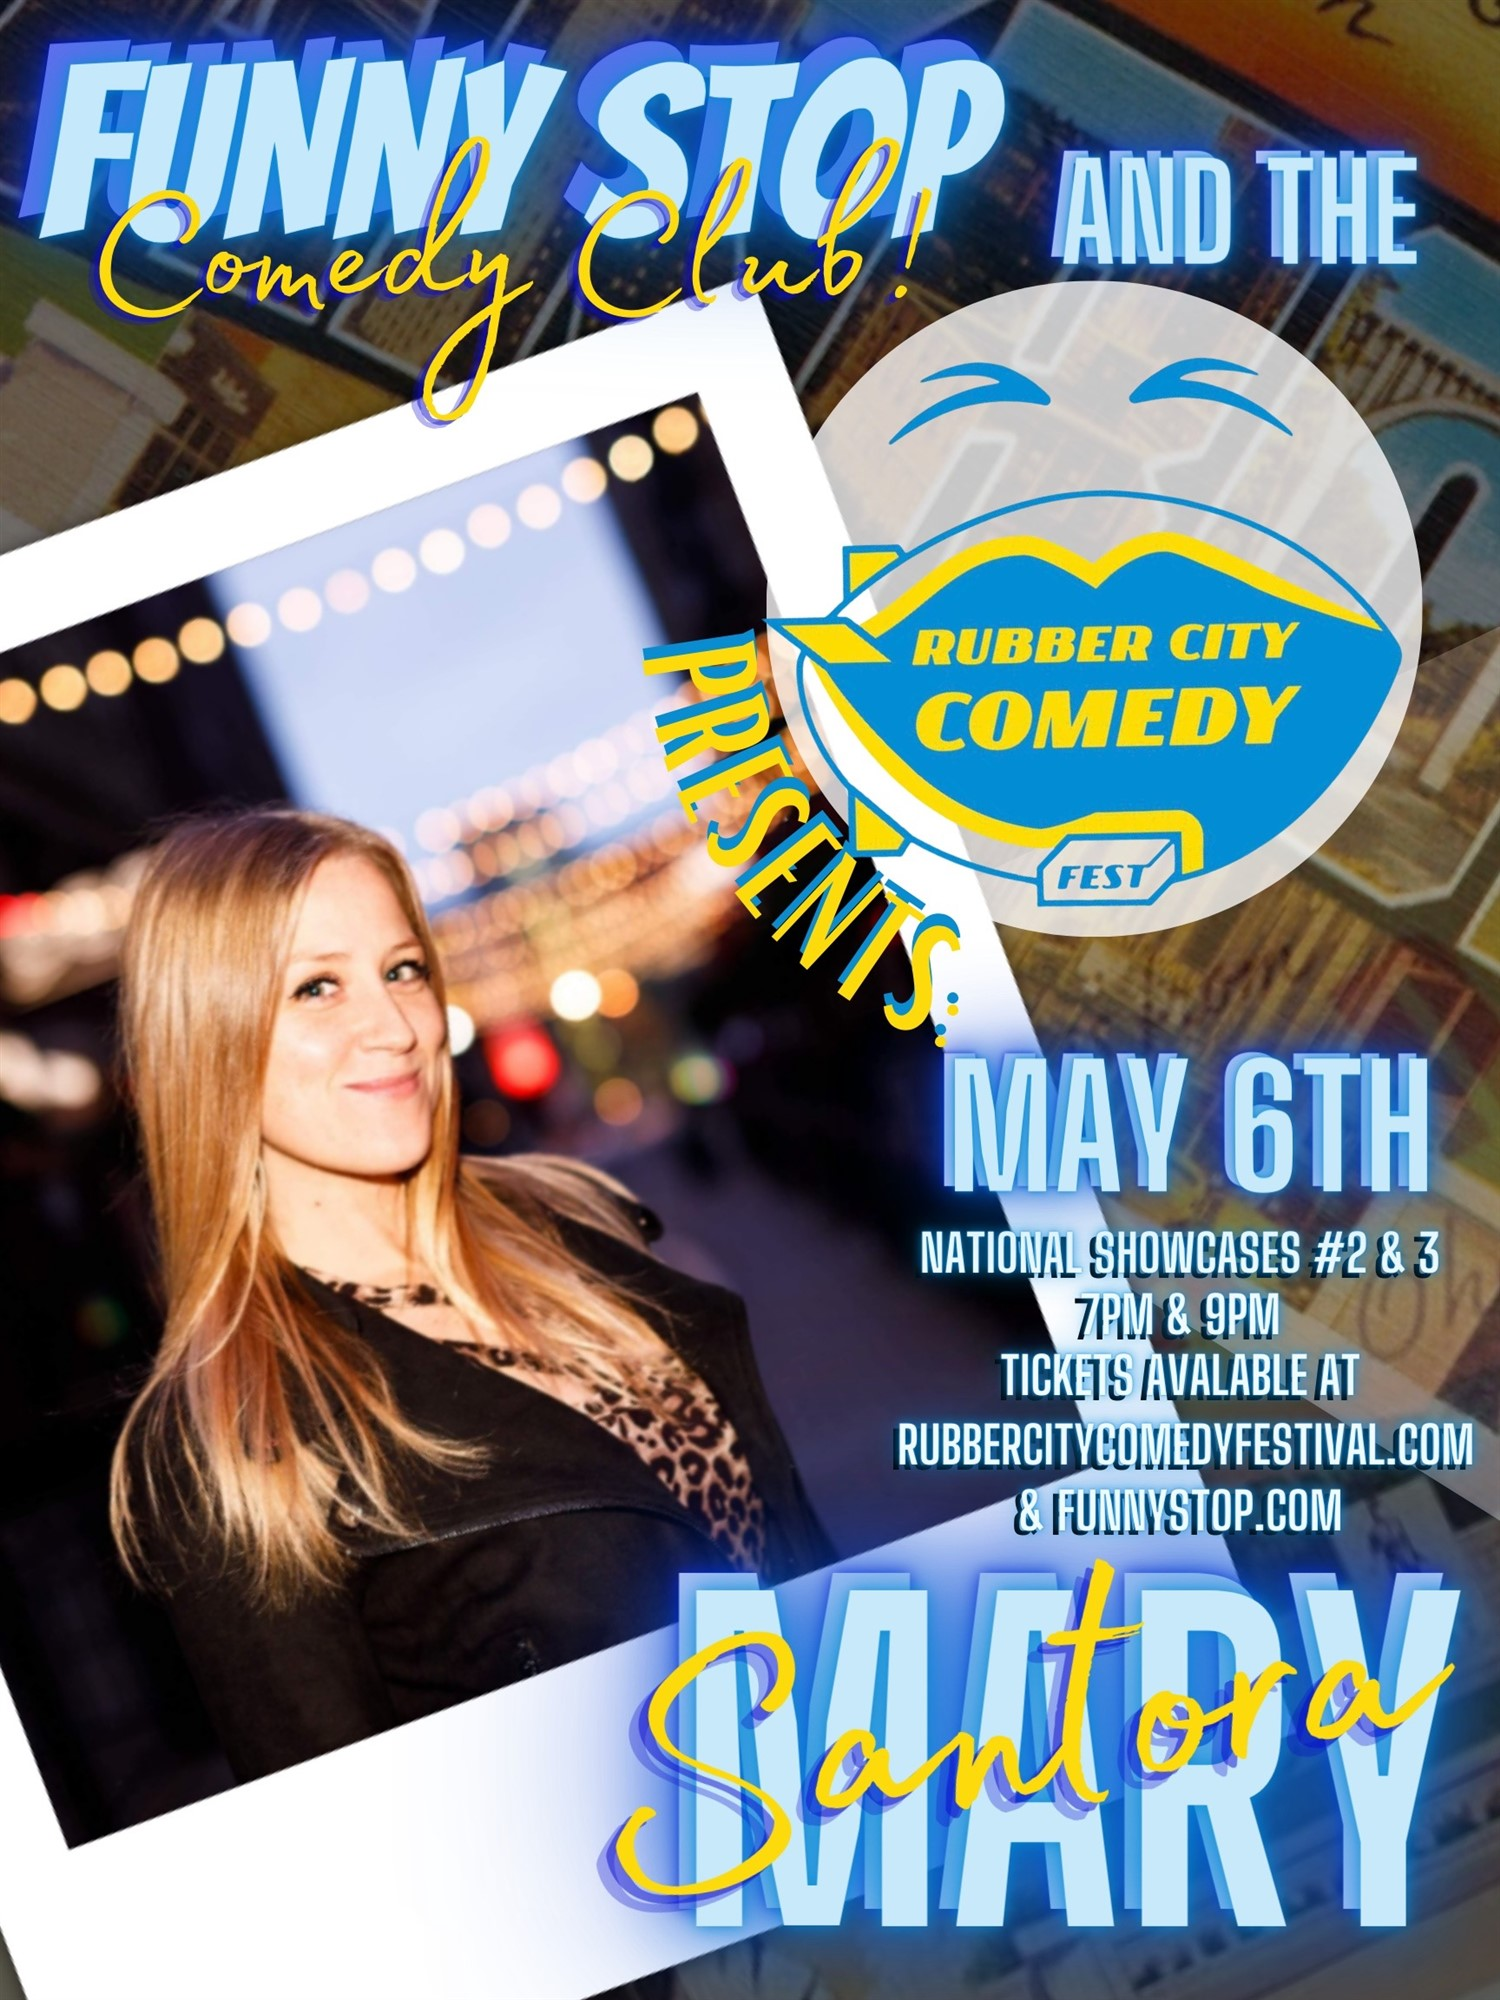 Mary Santora 7 Pm Show Rubber City Comedy Festival on May 06, 19:00@Funny Stop Comedy Club - Buy tickets and Get information on Funny Stop funnystop.online